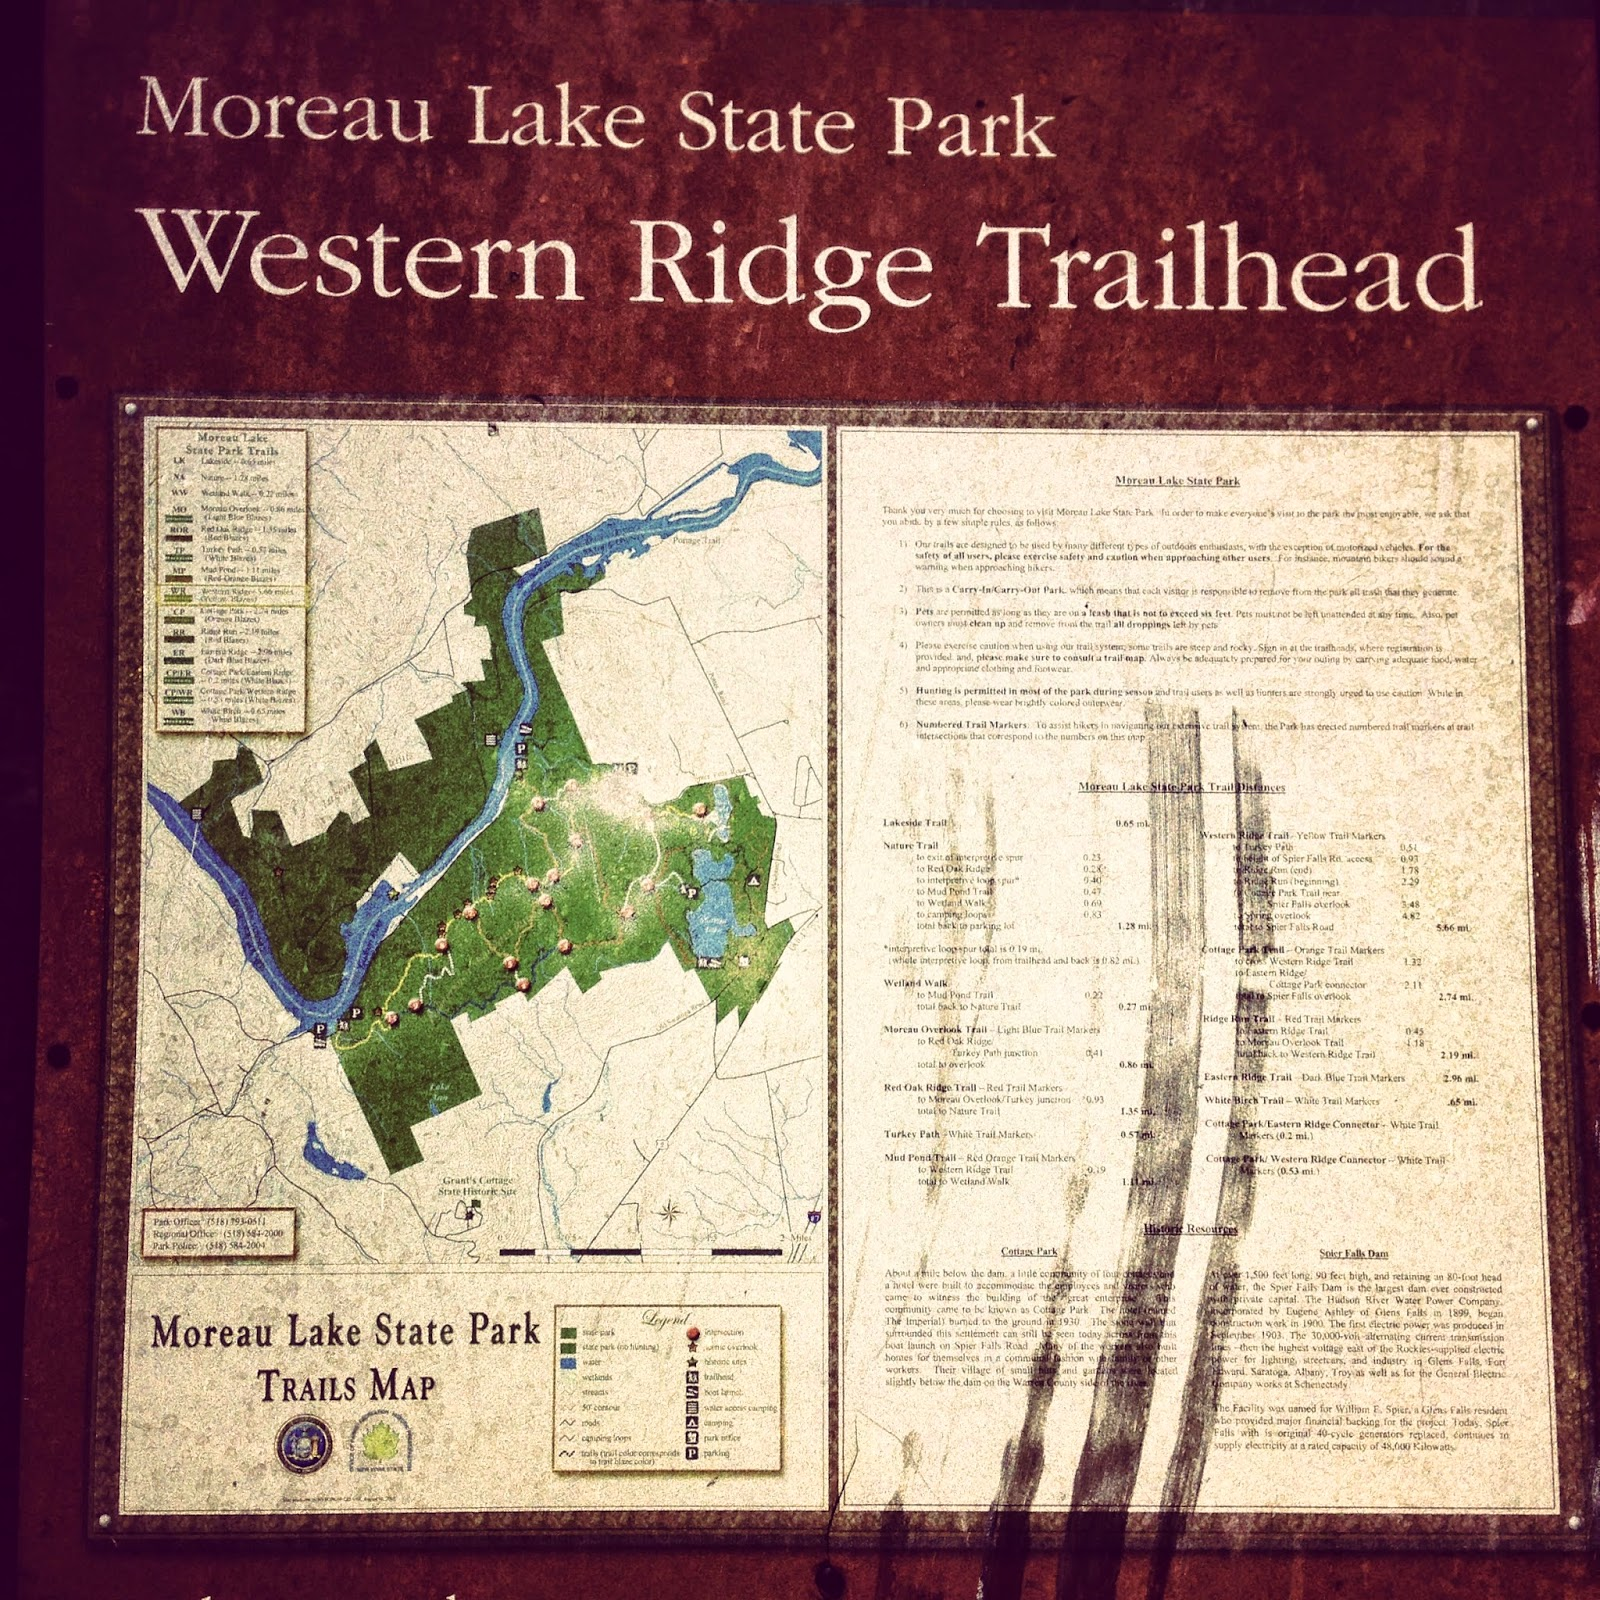 Western Ridge Trailhead